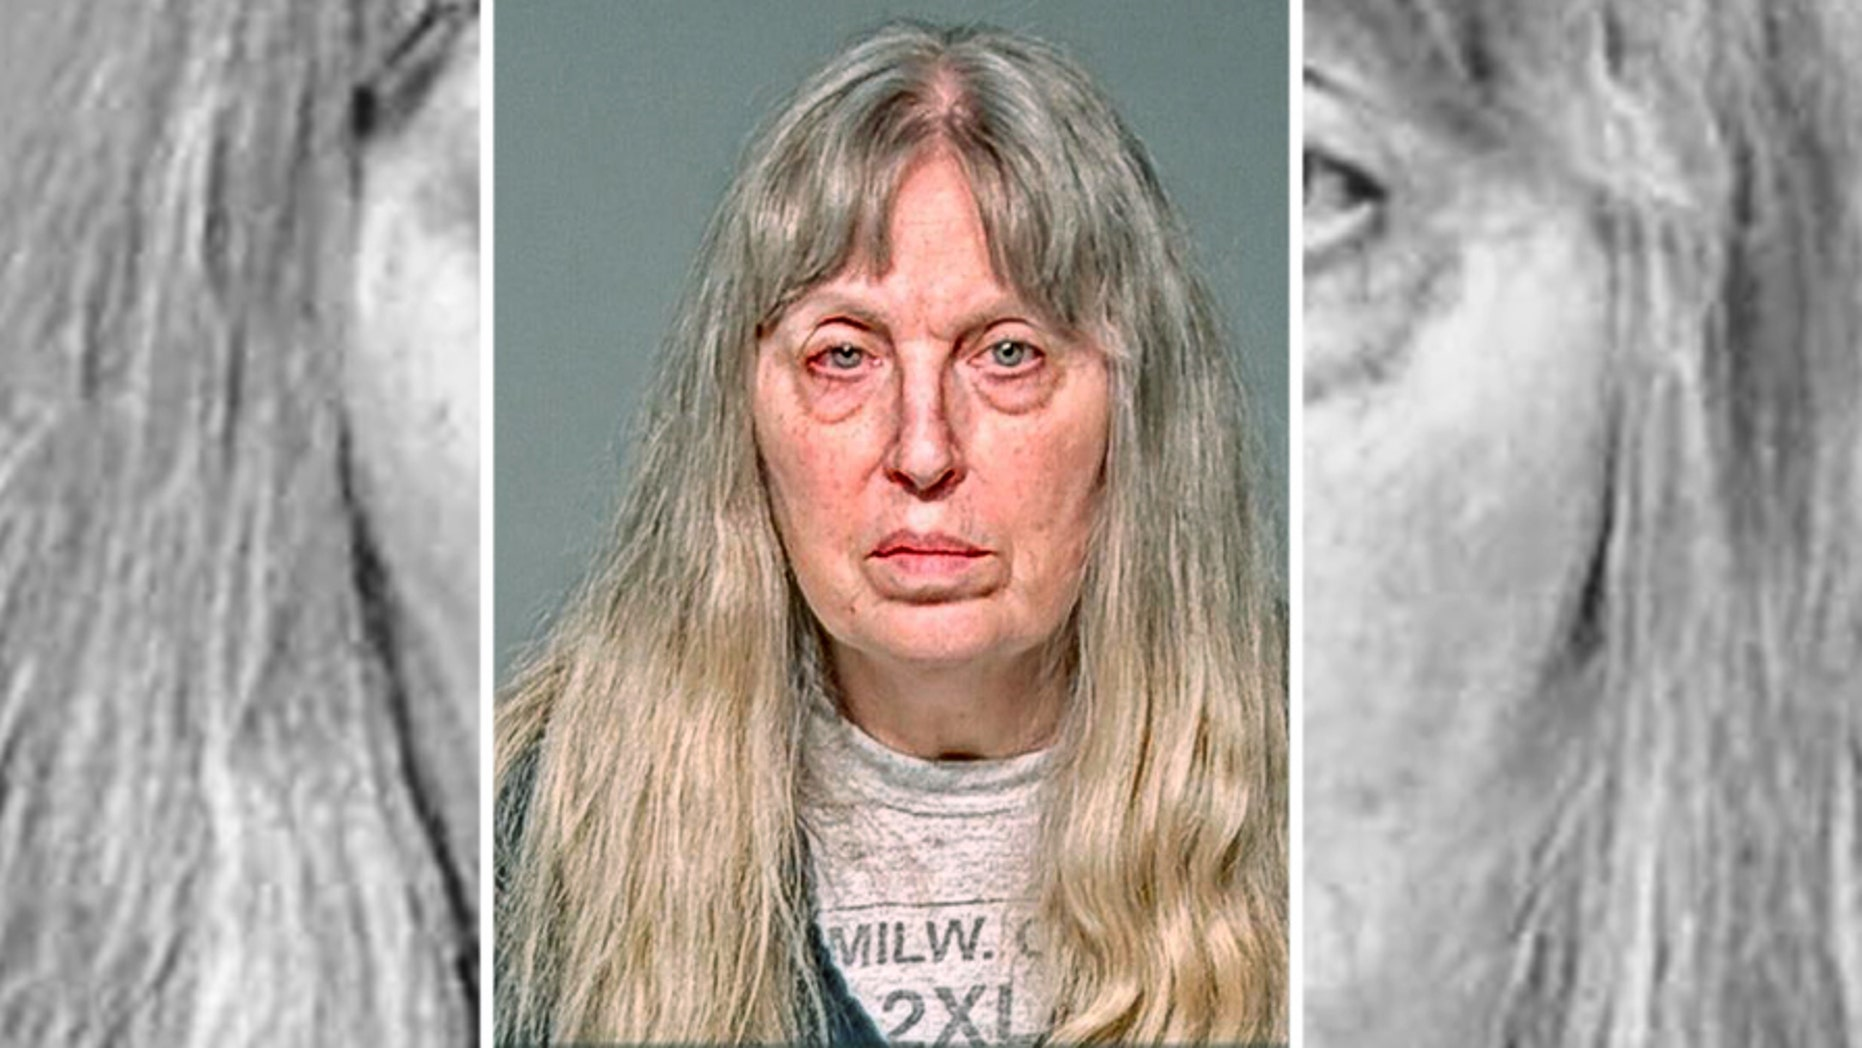 Nancy Moronez, 60, of Wisconsin, has been charged with drowning and suffocating three babies more than three decades ago.